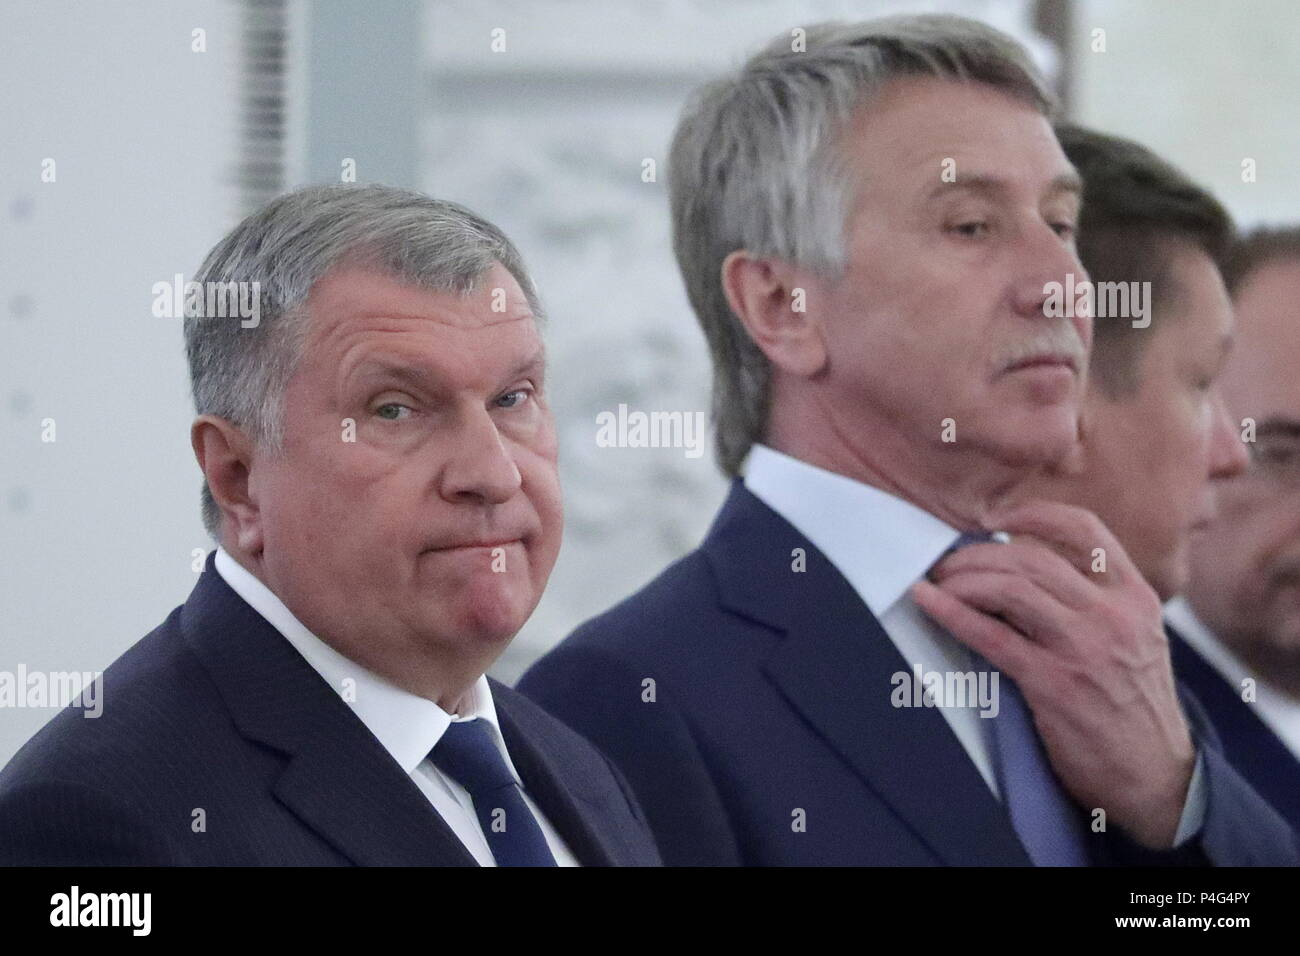 Heads of Rosneft and Gazprom ordered to publish data on their income 12/22/2014 93